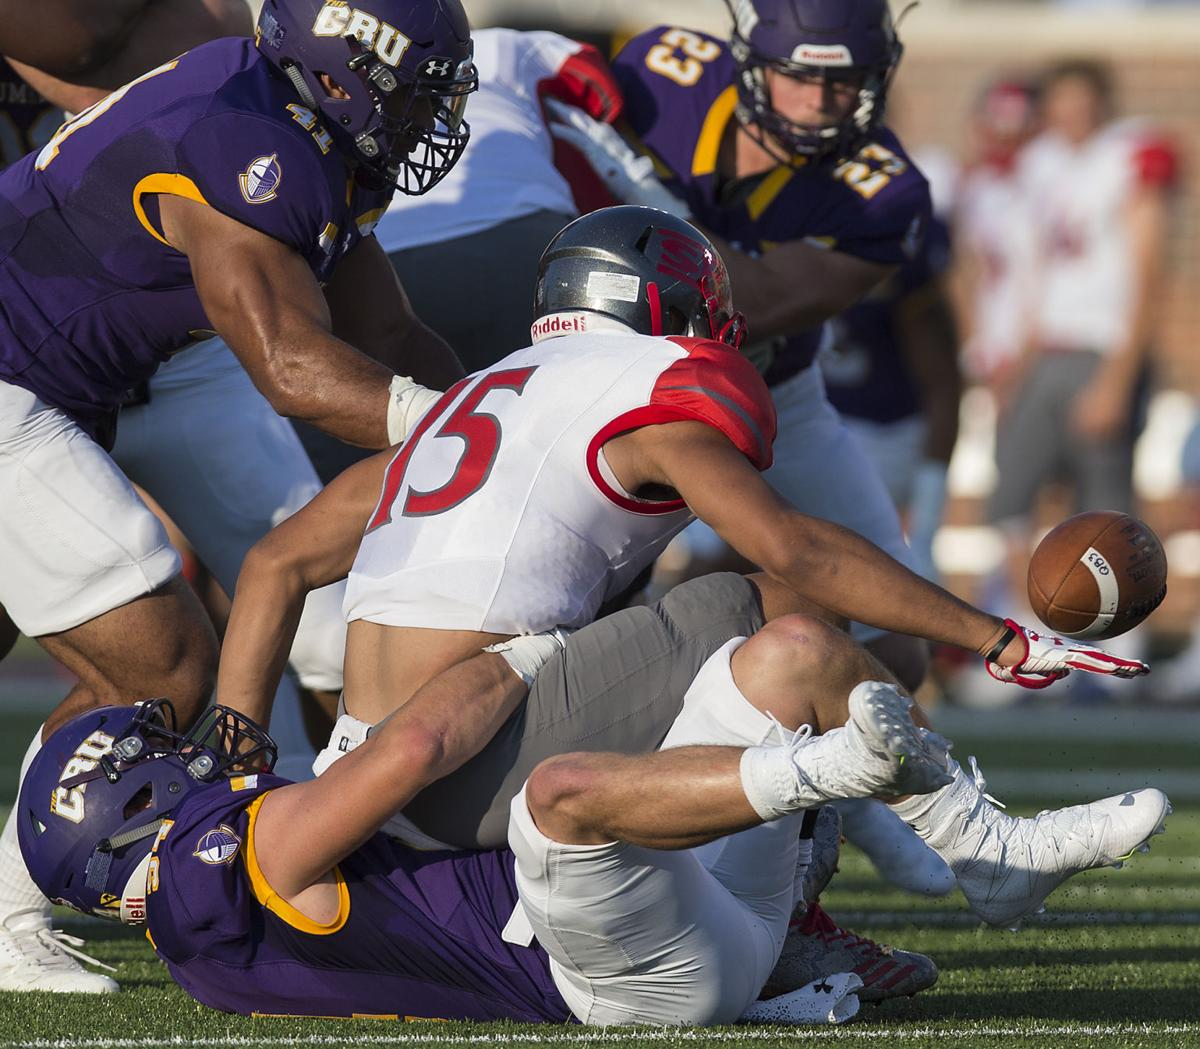 FOOTBALL: UMHB Opens Title Defense With 23-7 Win Over Sul